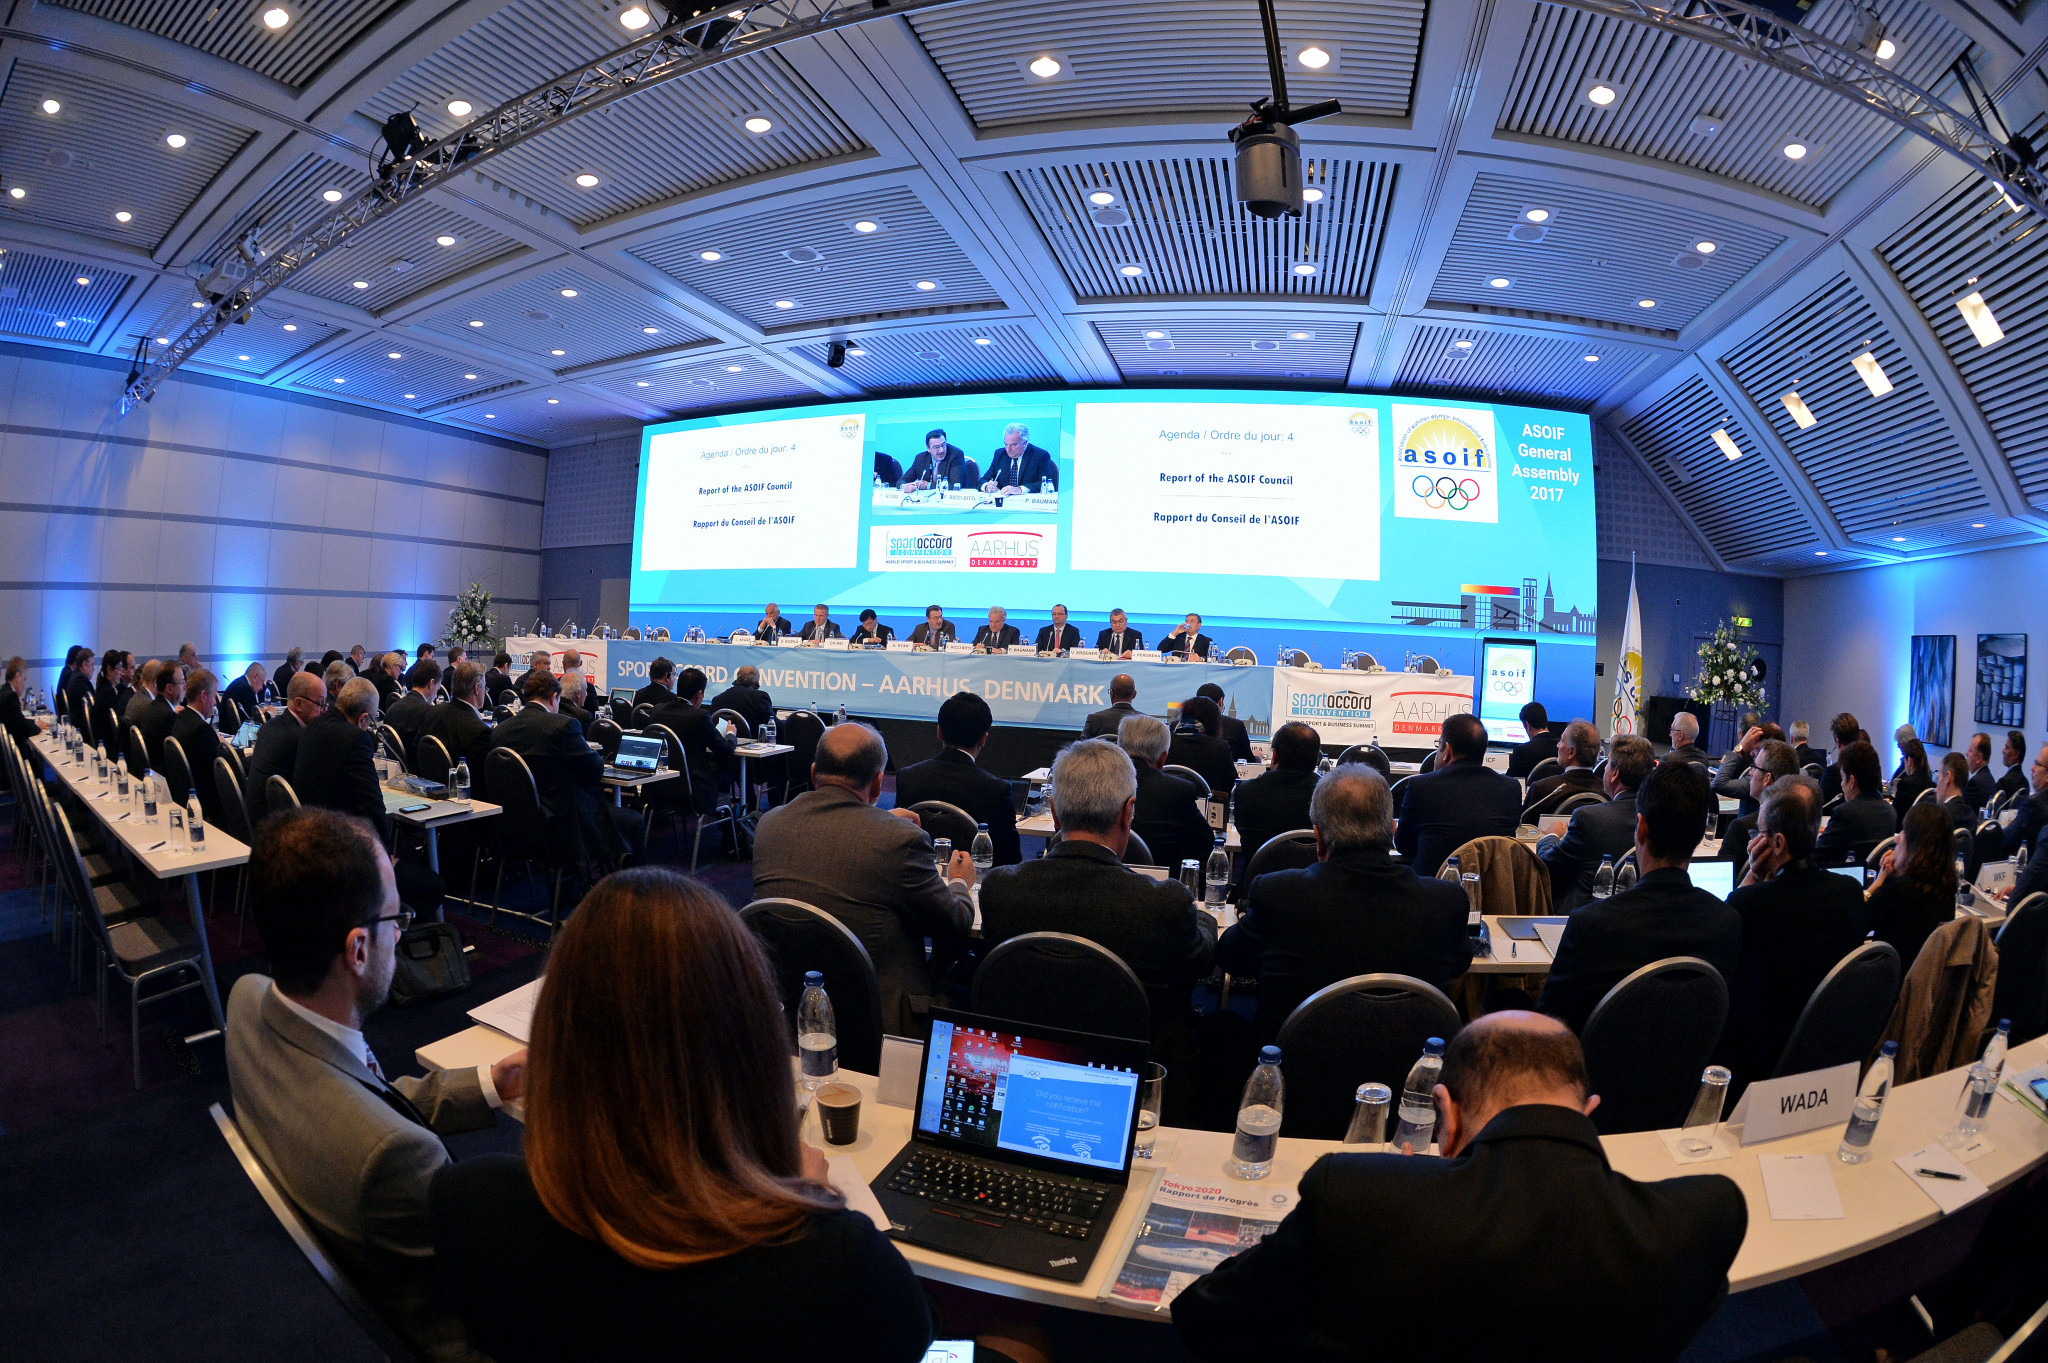 Findings of the third governance review will be presented to the ASOIF General Assembly in Beijing next year ©Getty Images